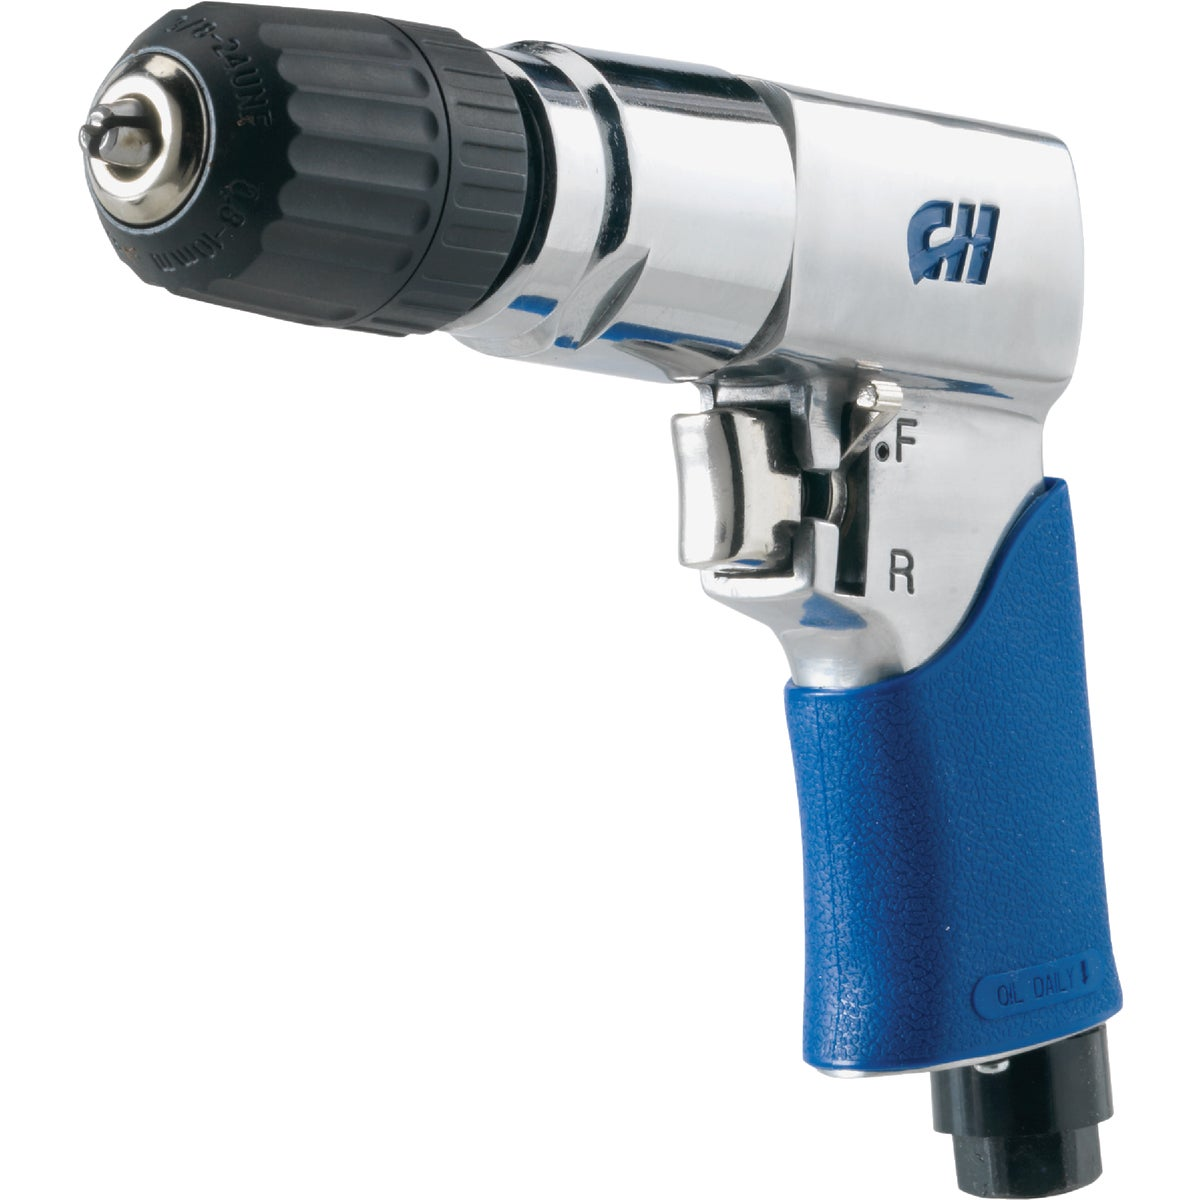 "3/8"" REVERSE DRILL/CHUCK - TL054500AV by Campbell Hausfeld Co"